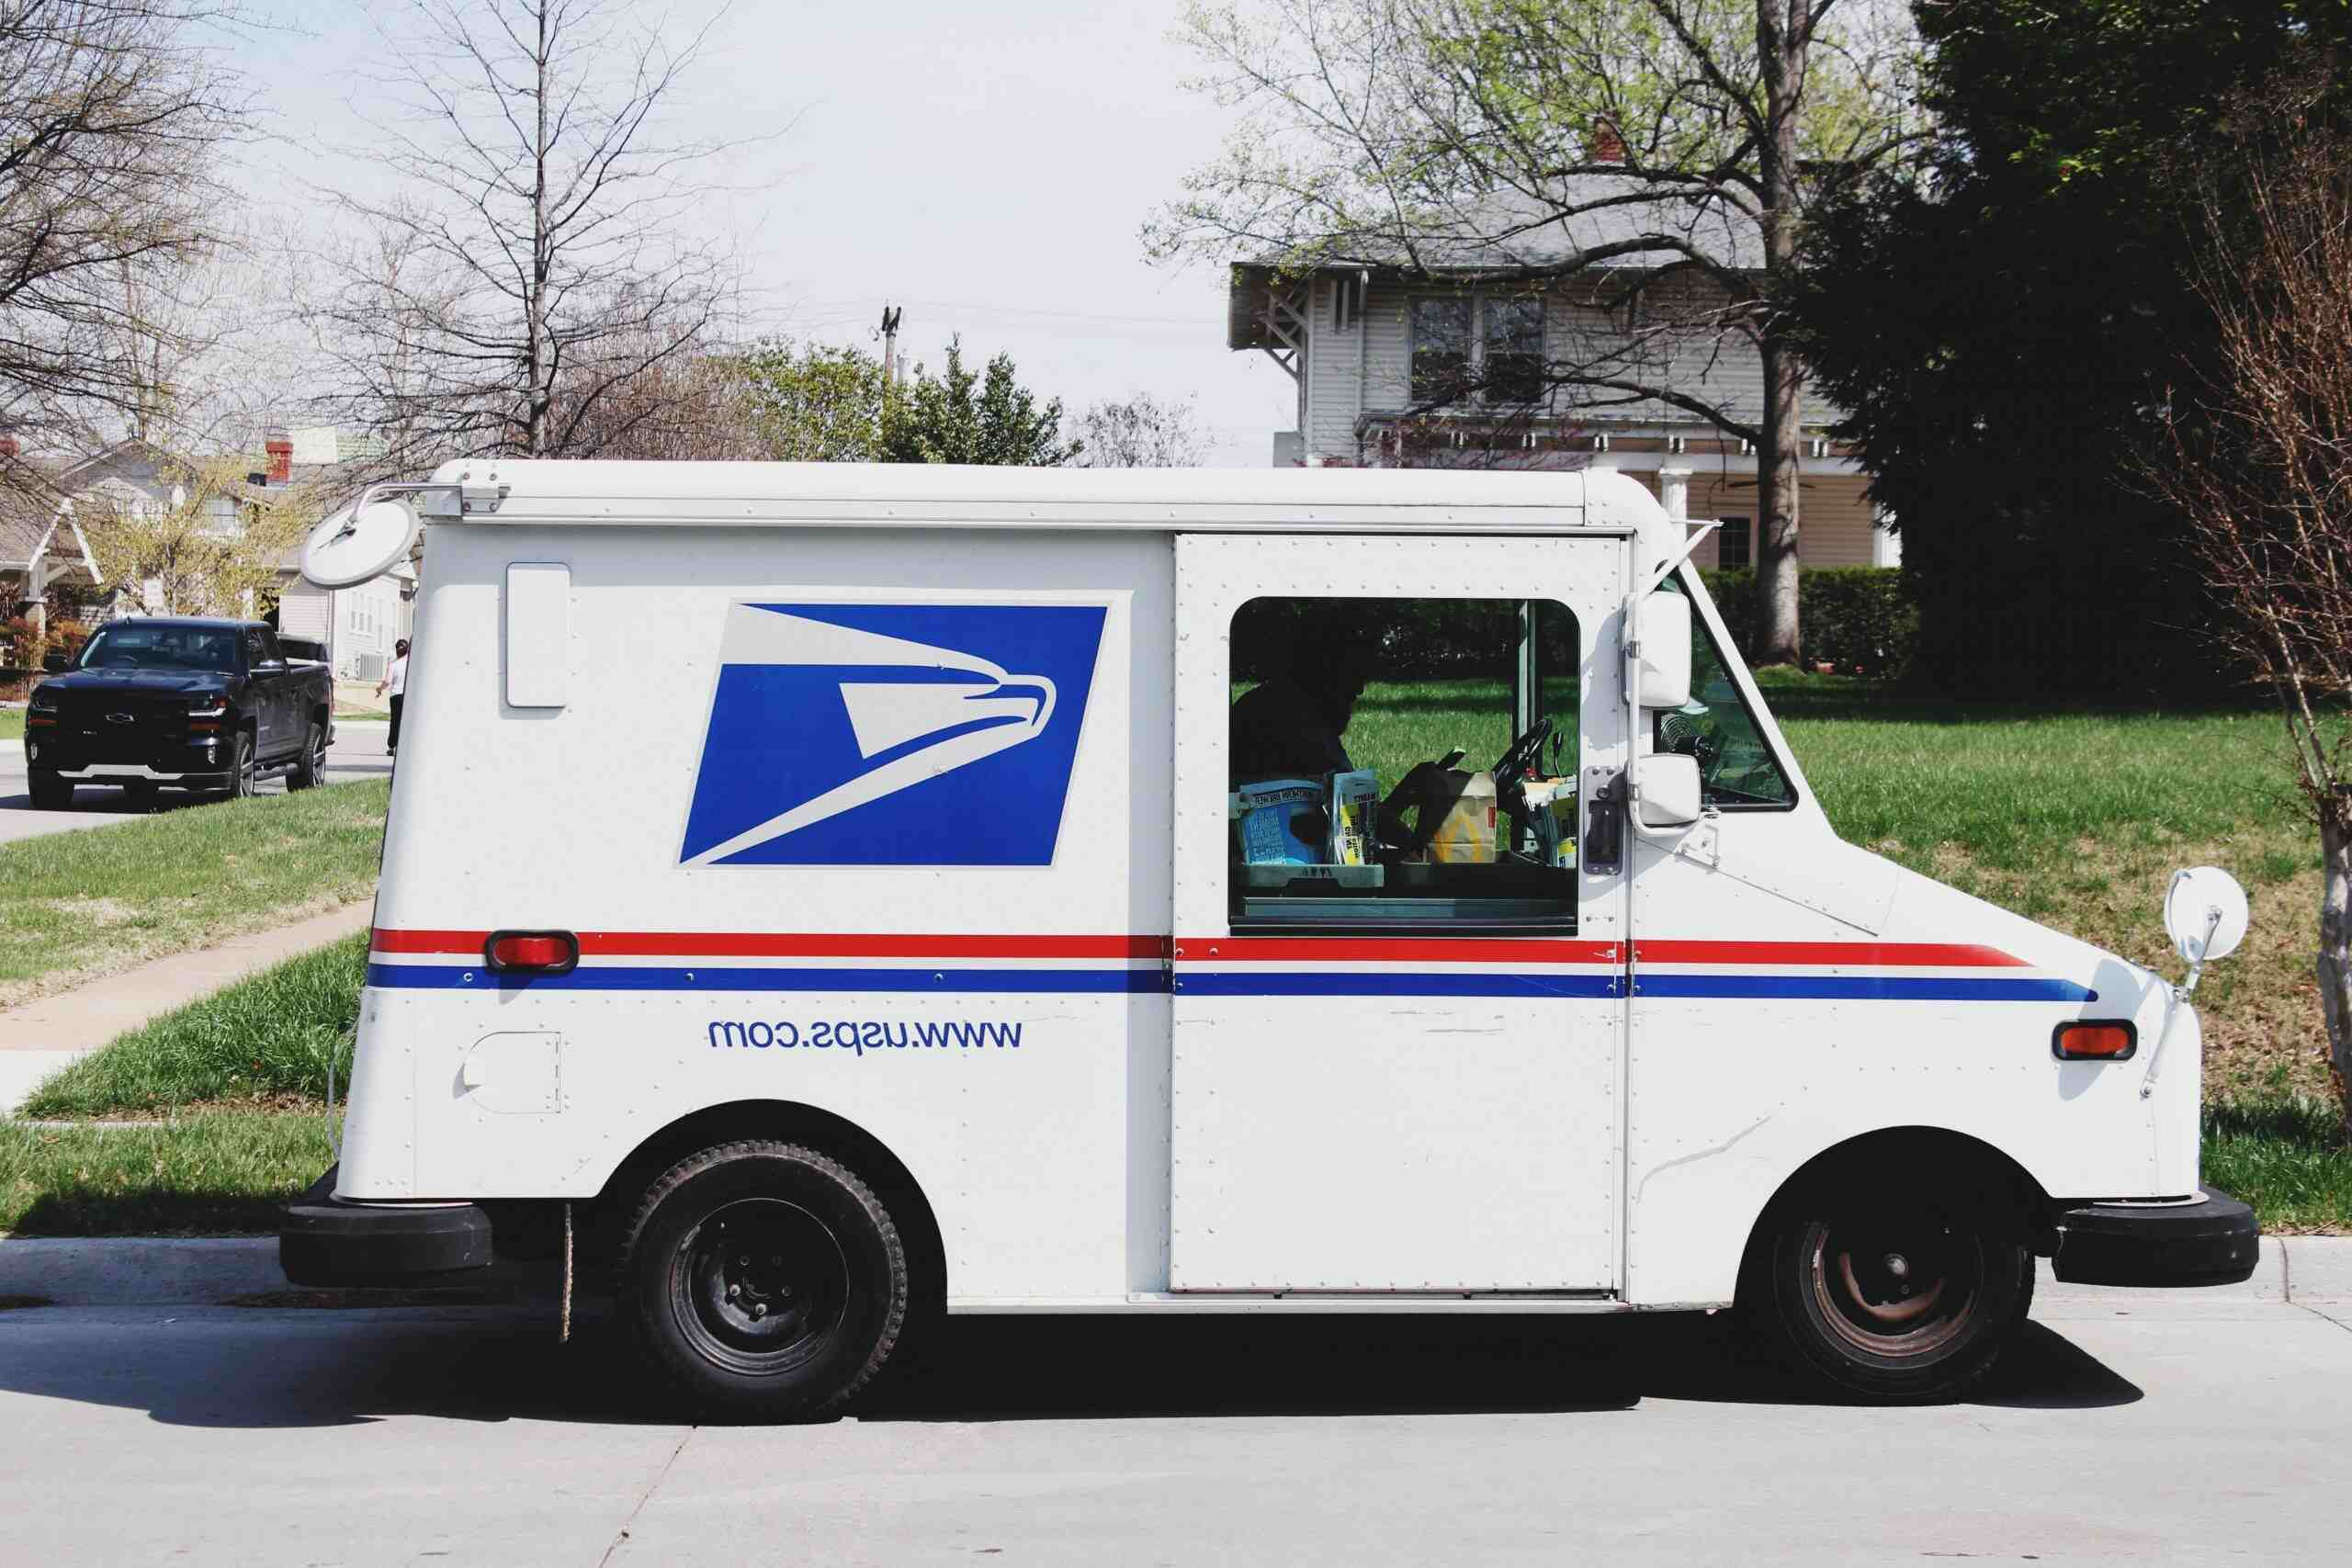 What is the problem with the USPS?